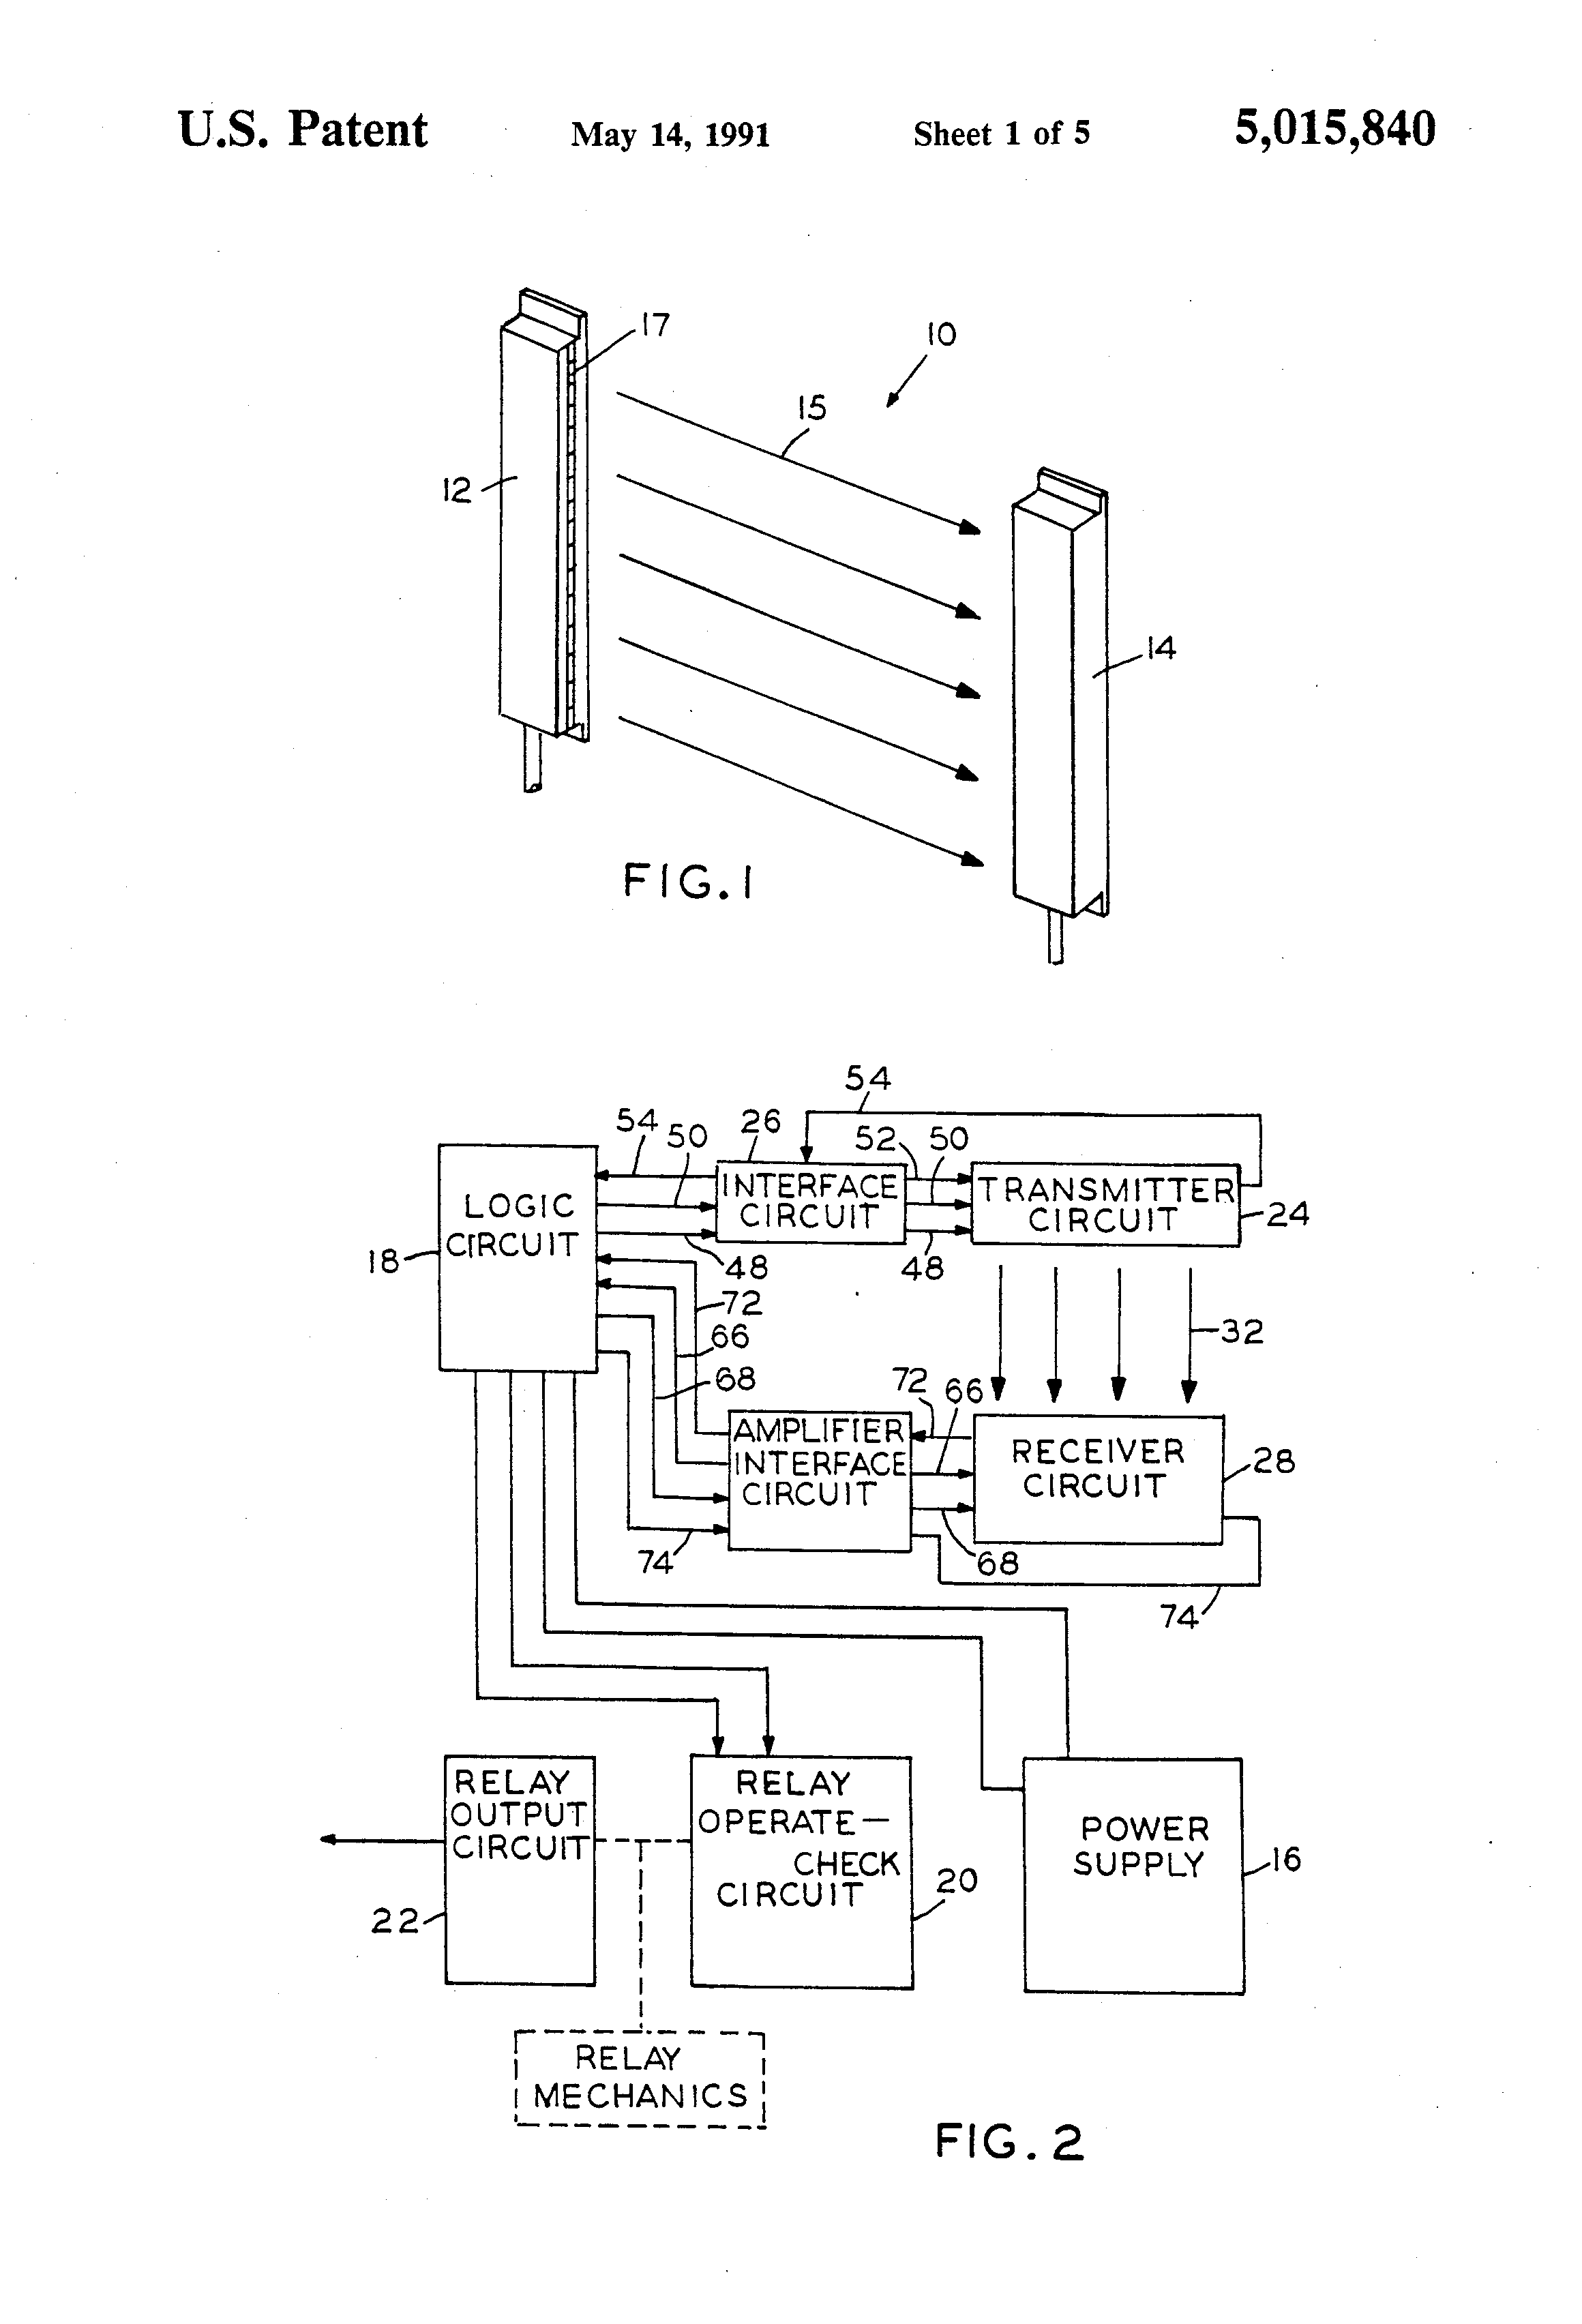 Sick Safety Relay Wiring Diagram 32 Images Electronic Circuits Page 40 Nextgr Us5015840 1 Patent Self Checking Light Curtain System And Method 6024918